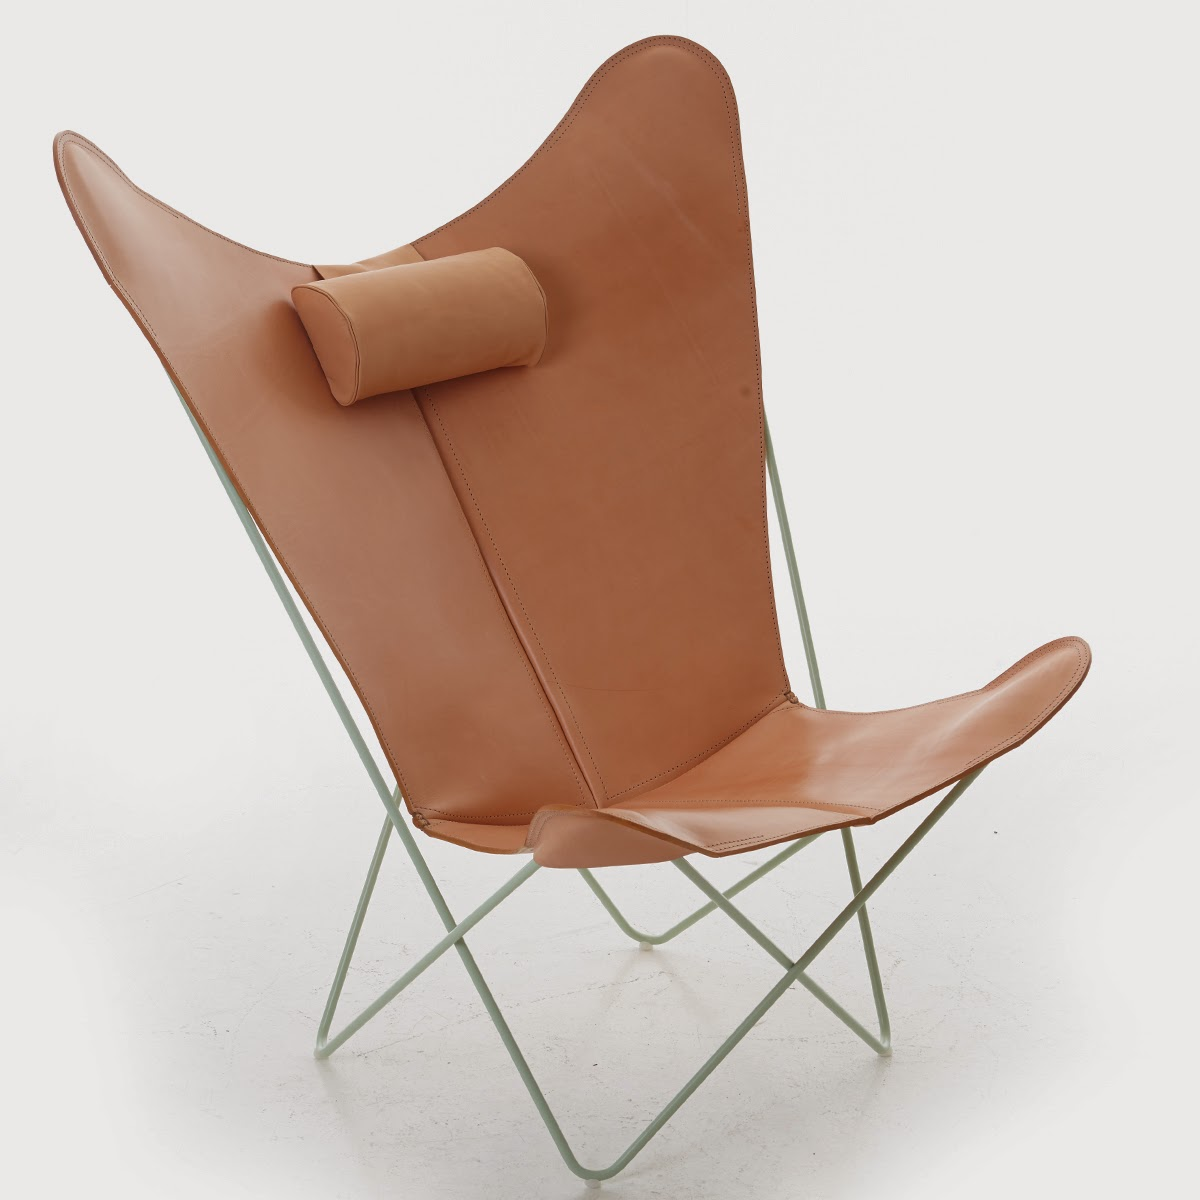 Butterfly chair original - The Ks Chair From Great Dane Furniture Au 2 450